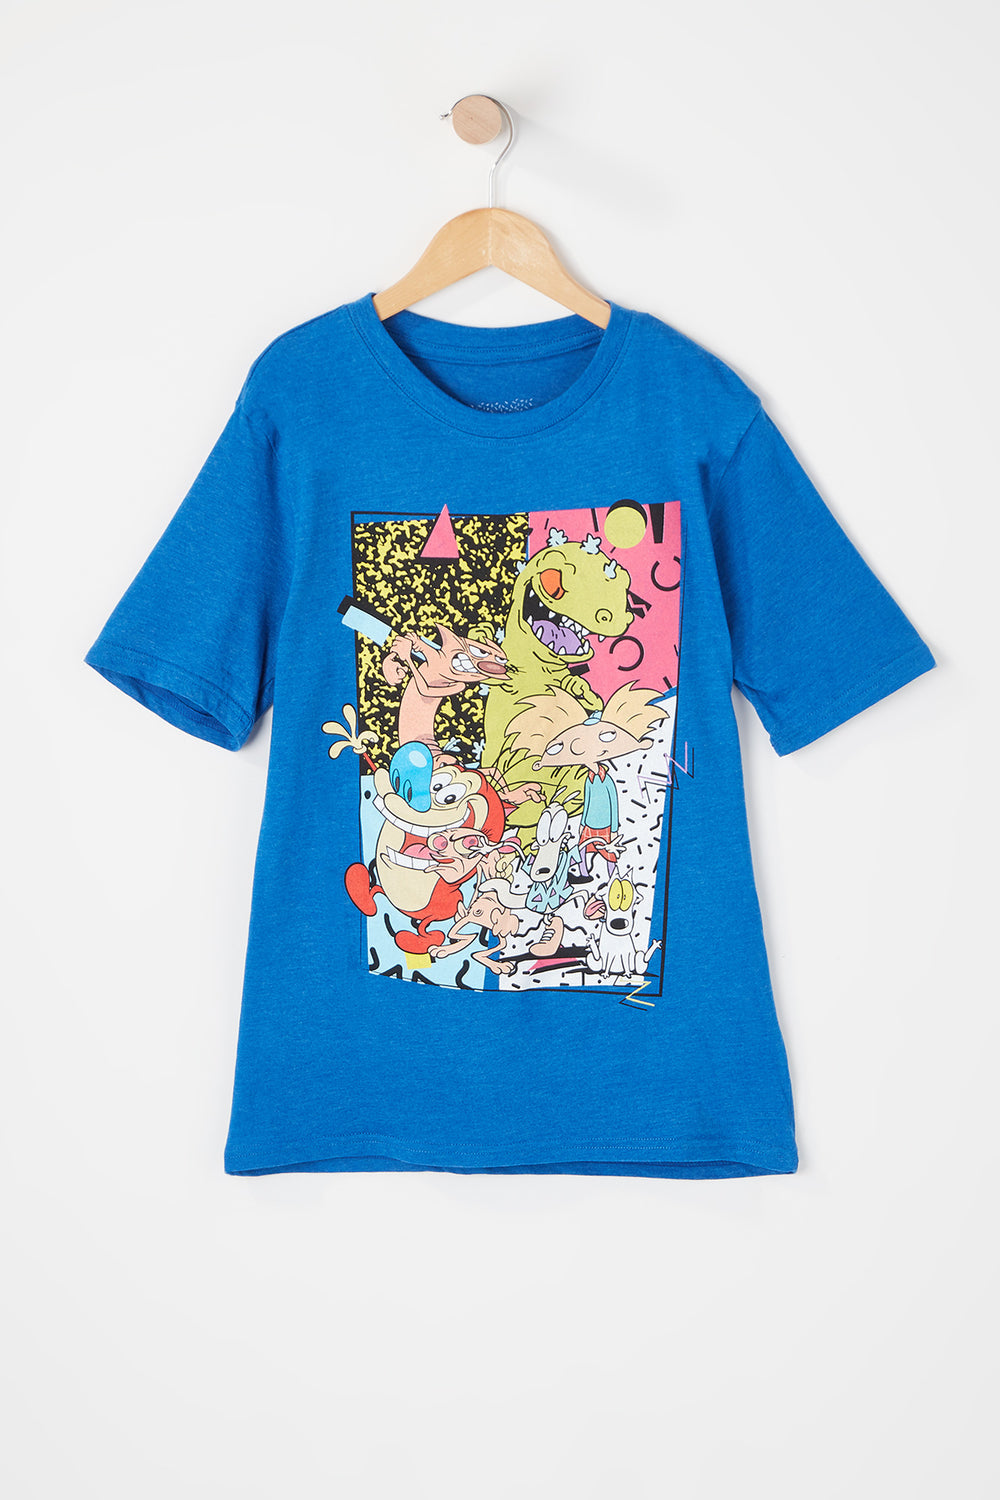 Youth Nickelodeon 90s All-Stars T-Shirt Blue